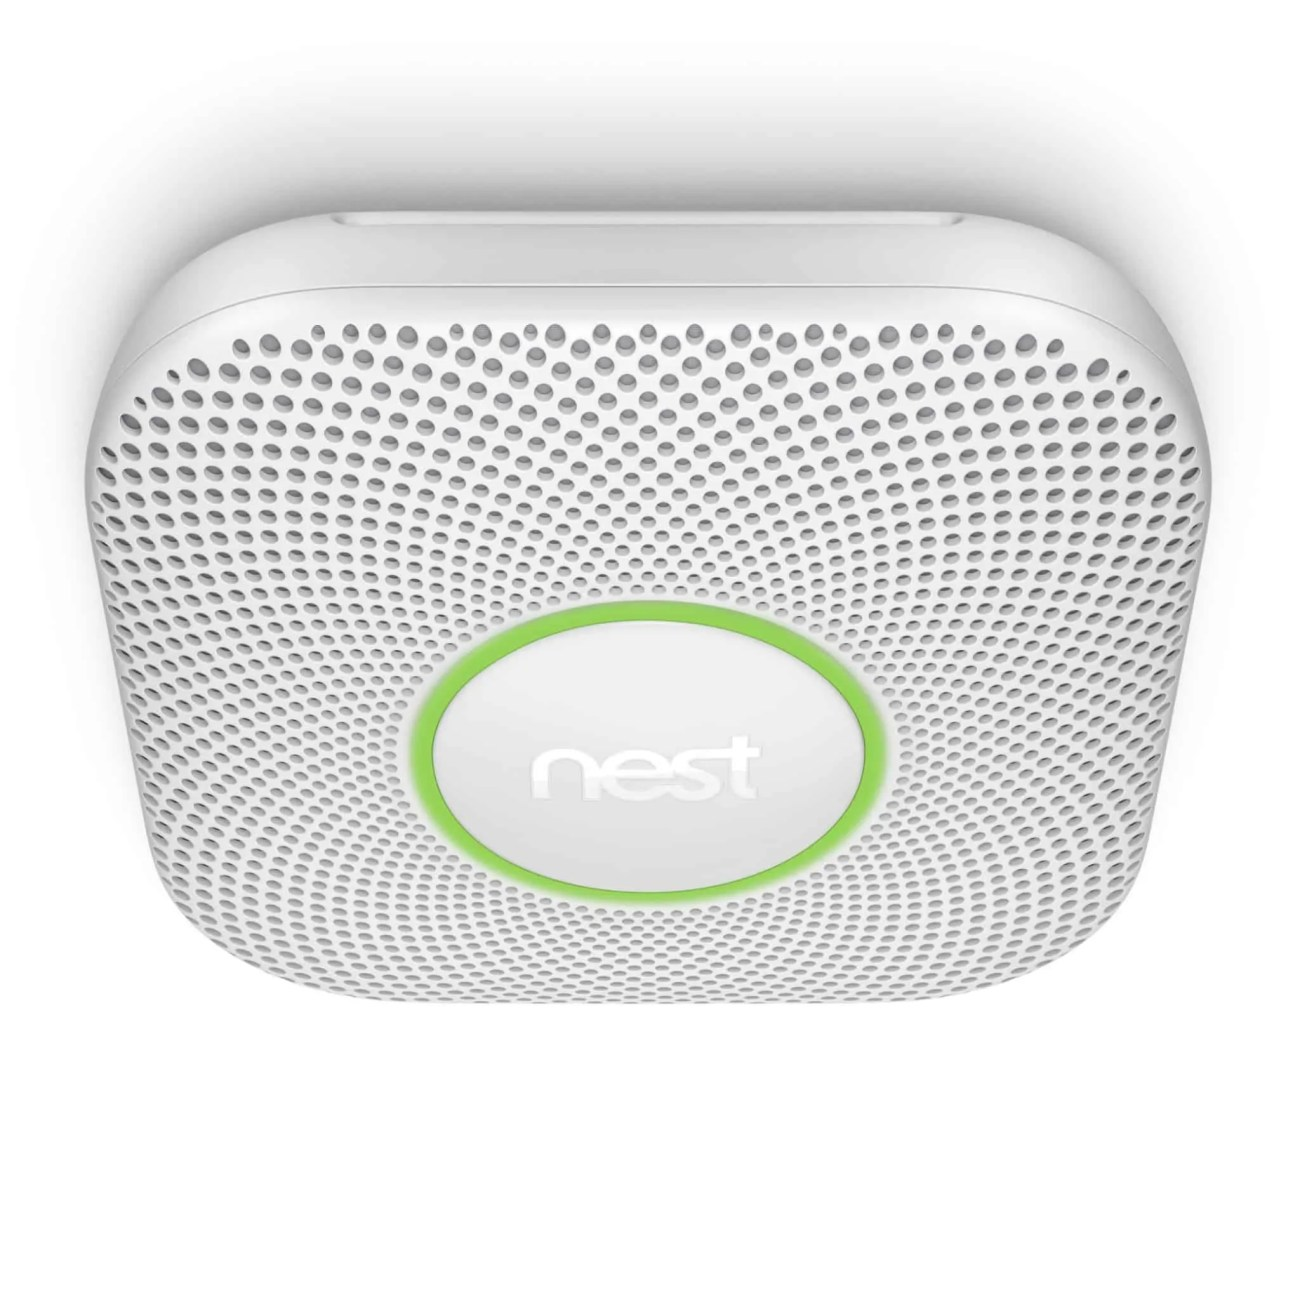 Building a Smarter Home with TELUS, Part One — The Things You Detect with a Nest Protect — Nest Protect White Mounted on Ceiling